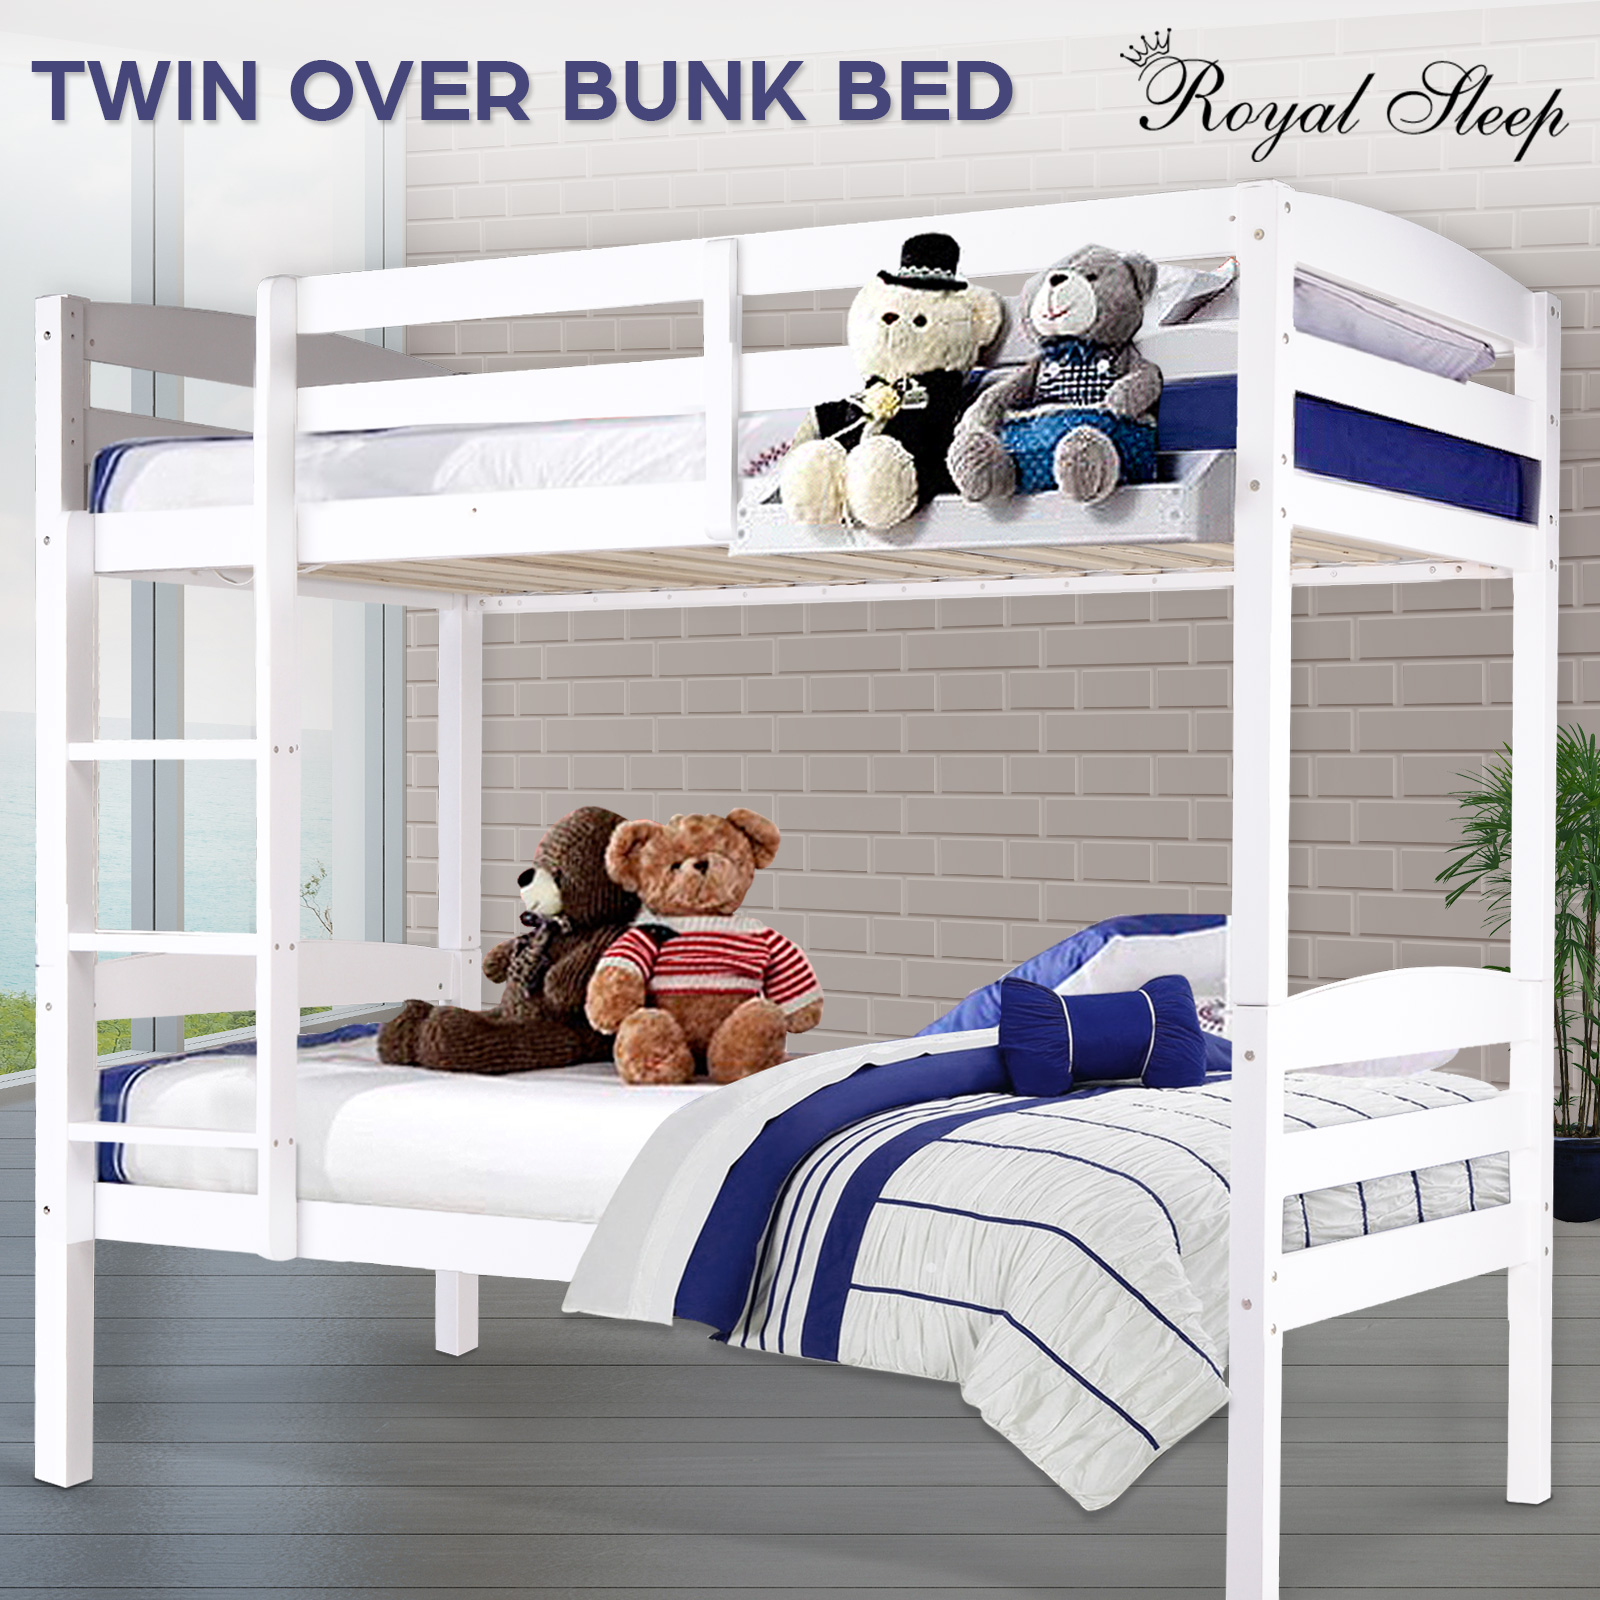 3 In 1 Convertible Bunk Bed Triple Bunk Bed 100 Solid Pine